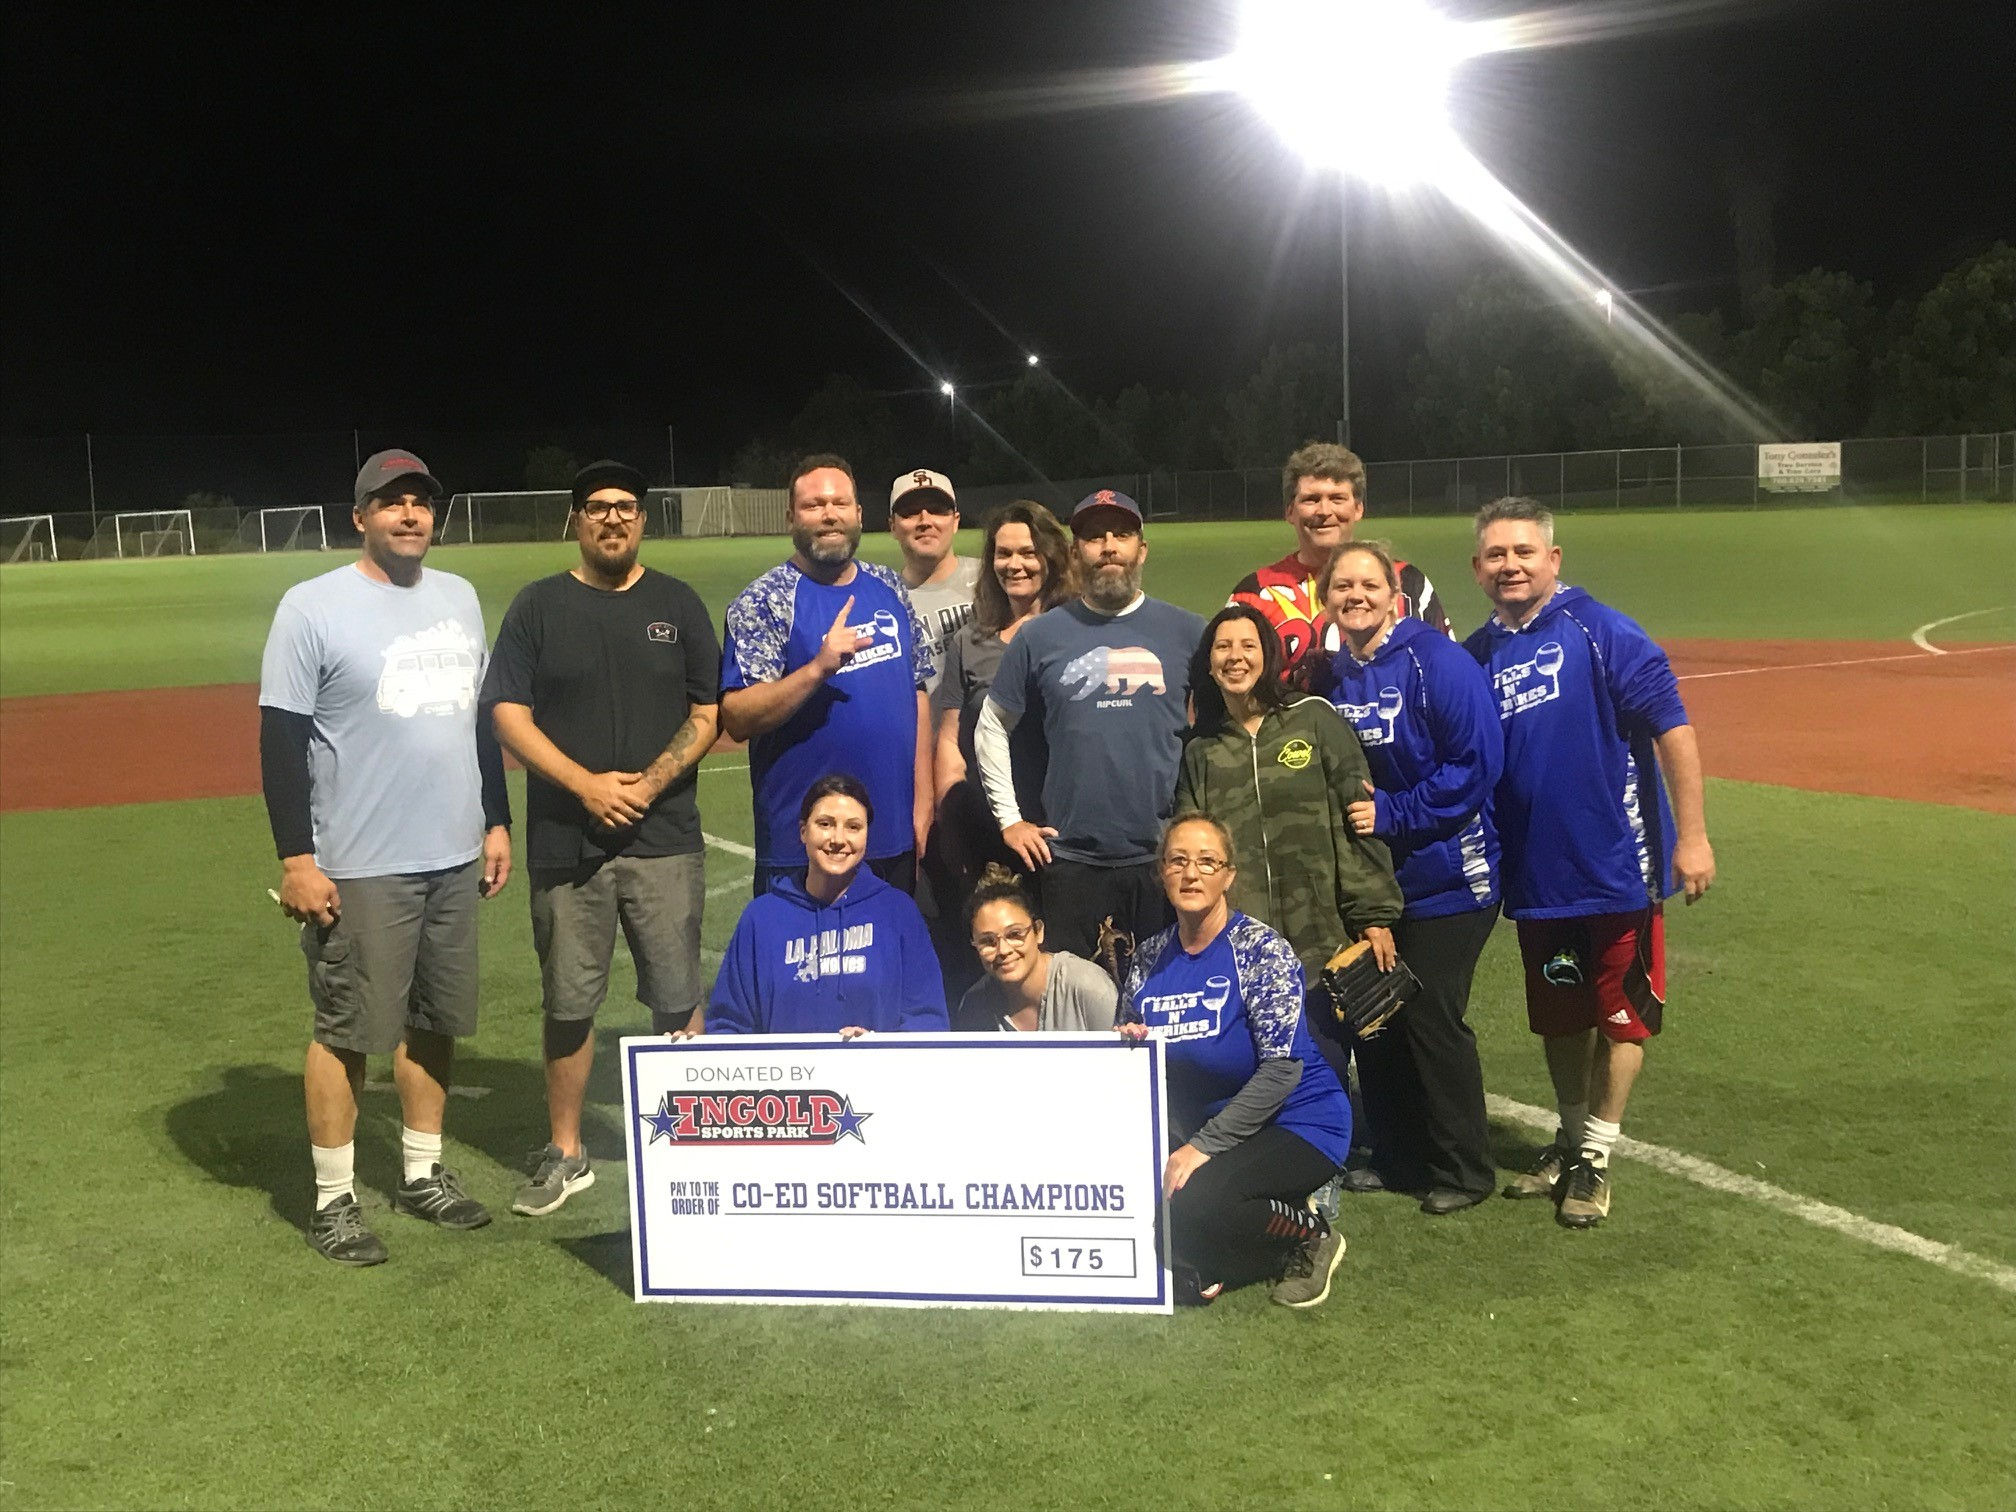 Coed lowers champs summer 2019.jpg